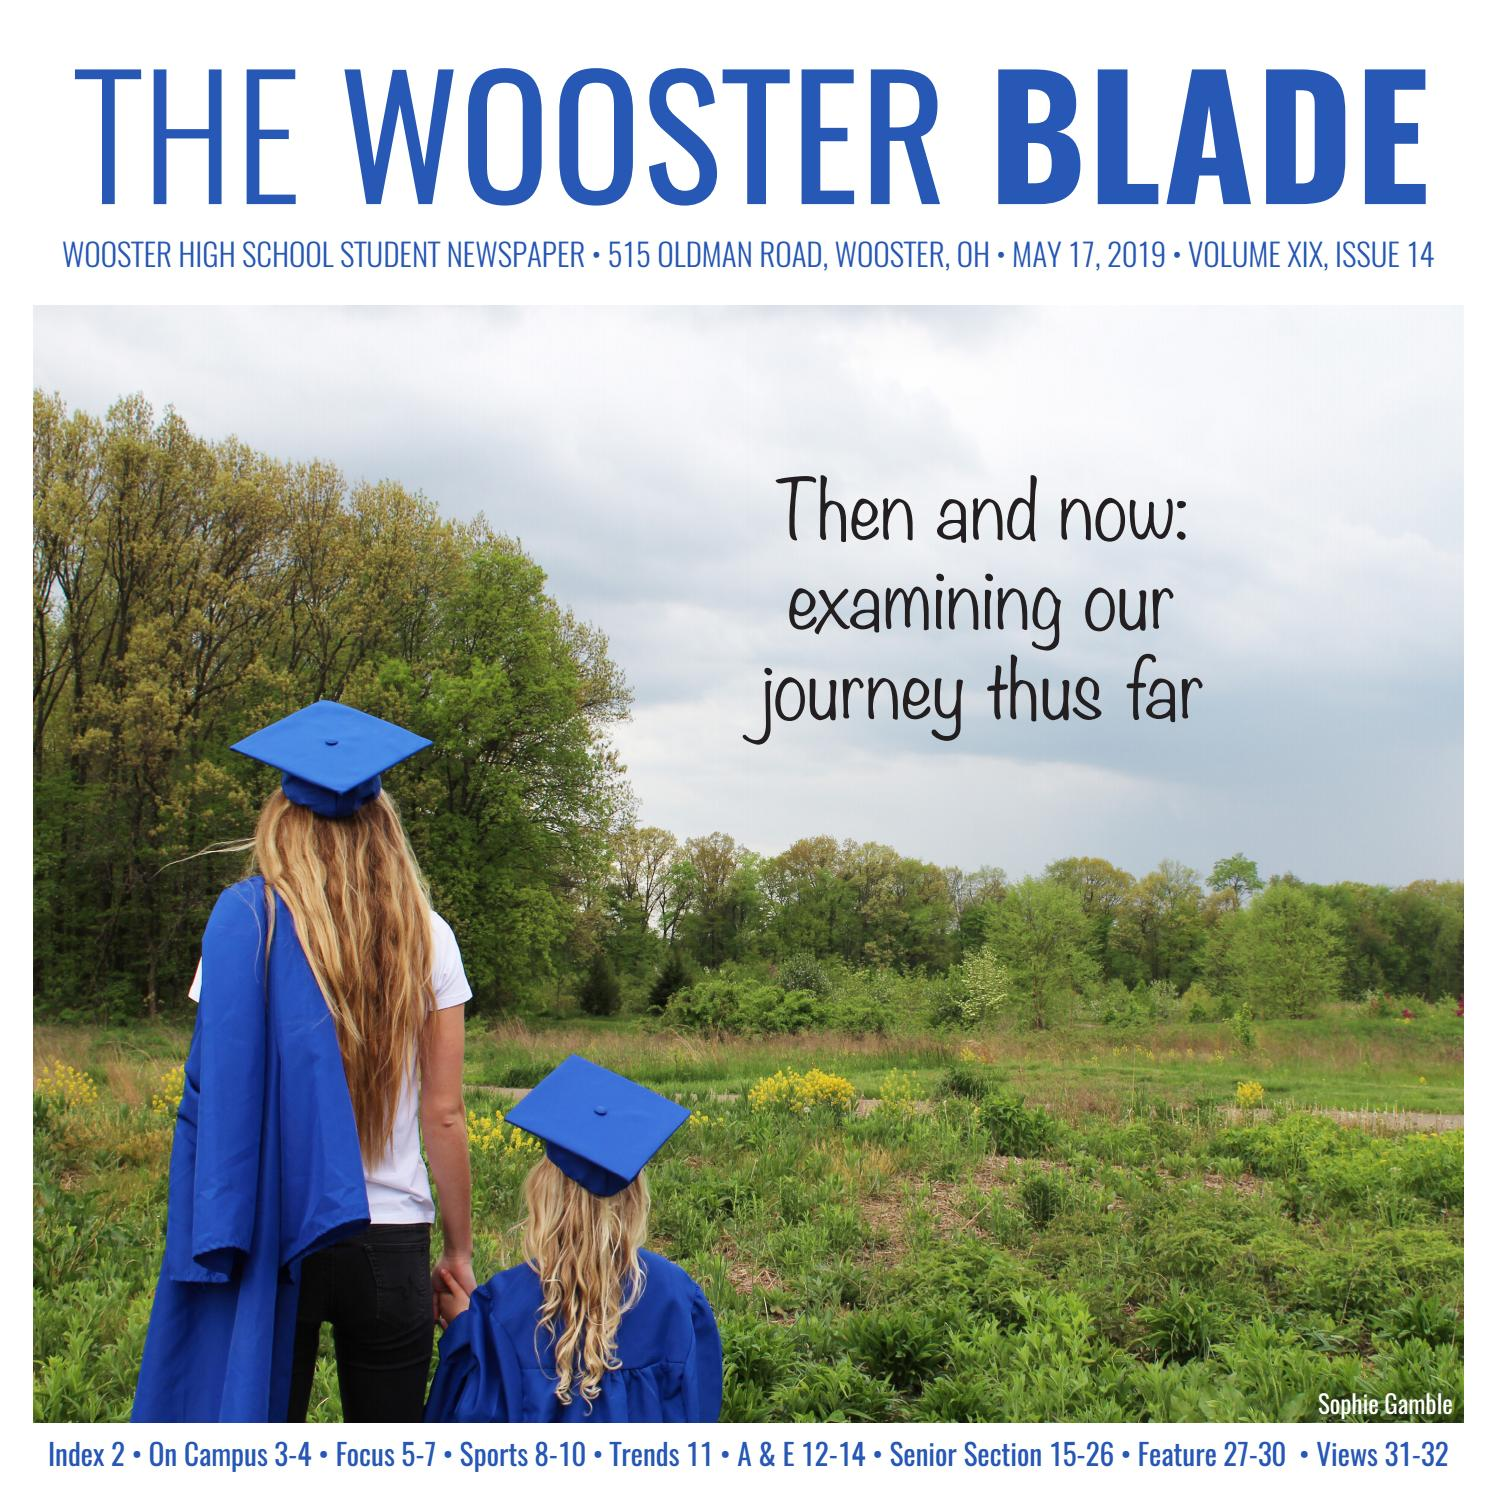 The Wooster Blade, Volume XIX, Issue 14 by The Wooster Blade